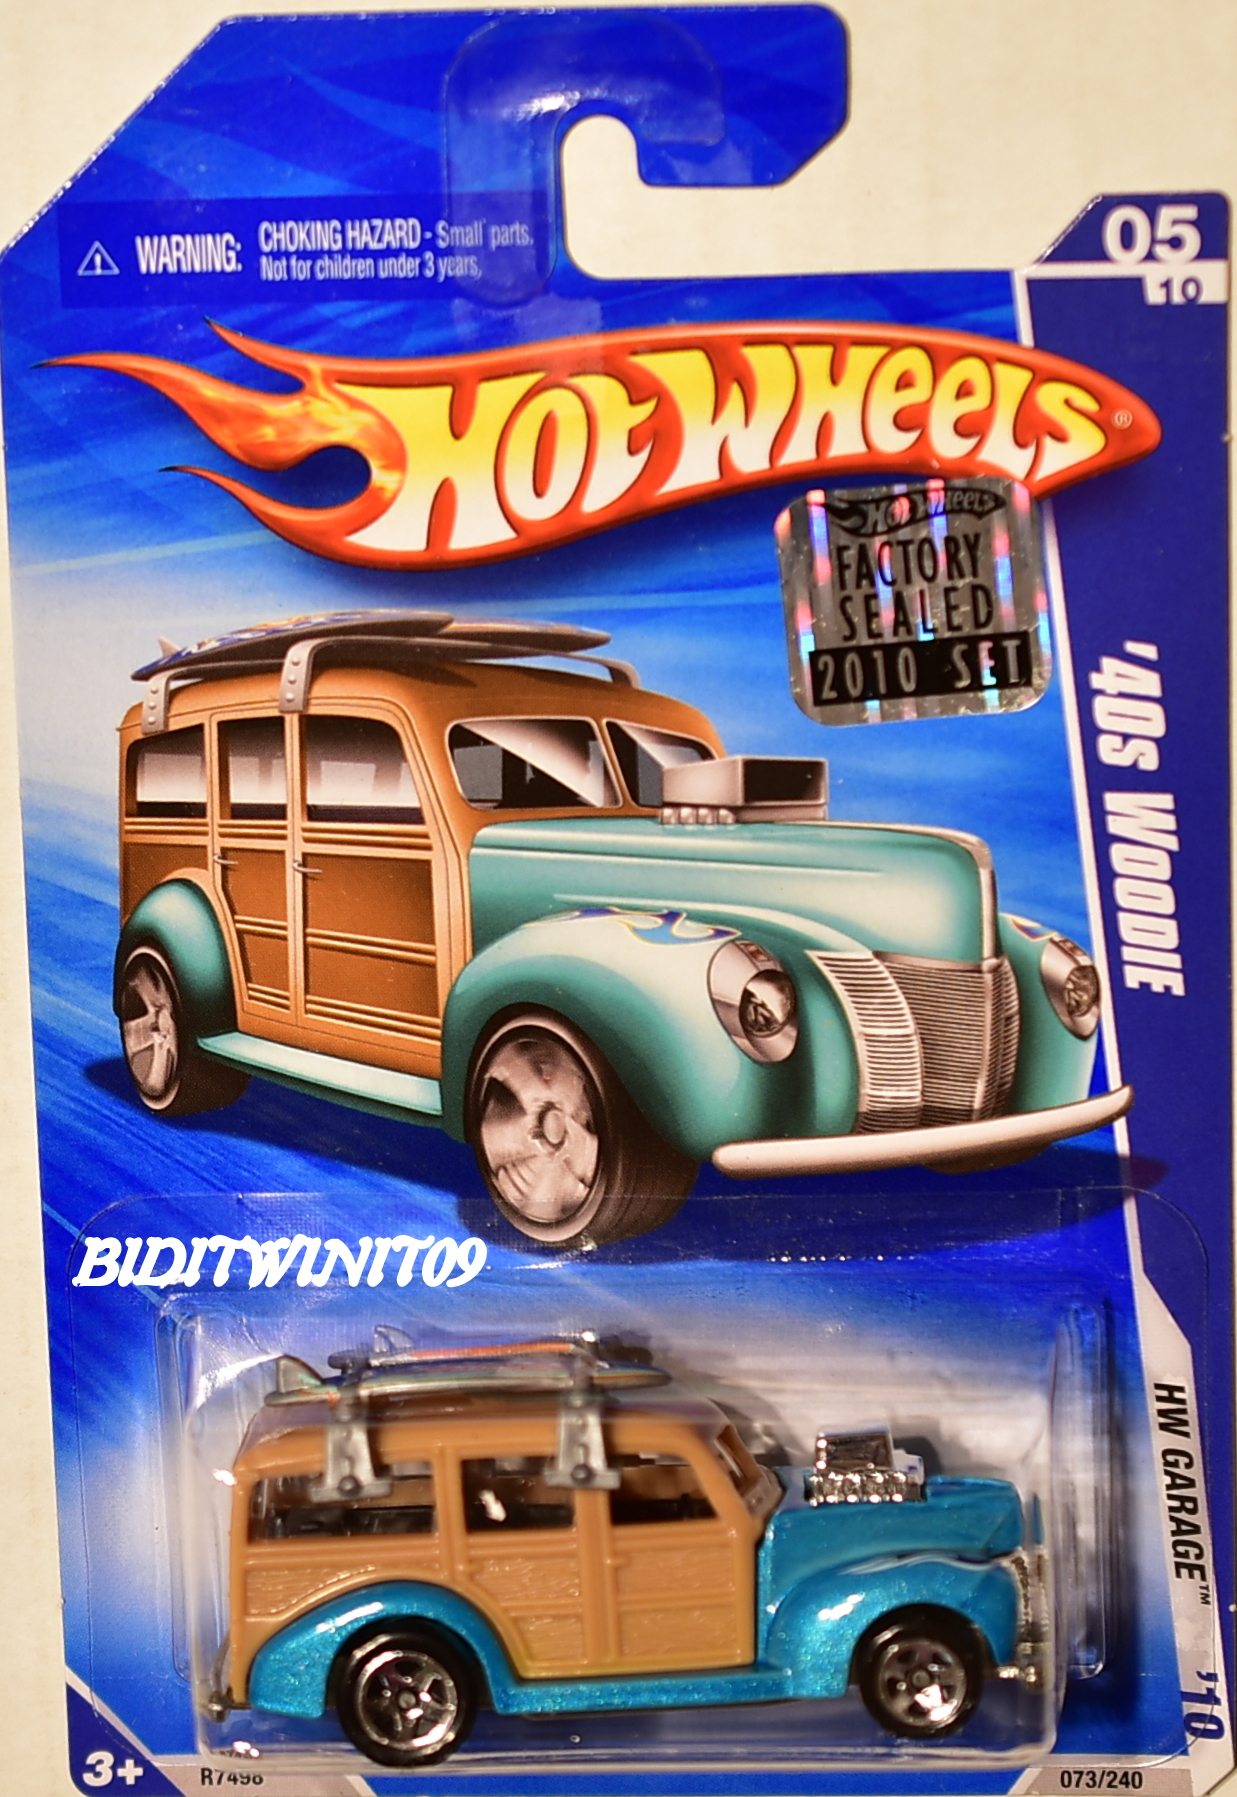 HOT WHEELS 2010 HW GARAGE '40S WOODIE FACTORY SEALED E+